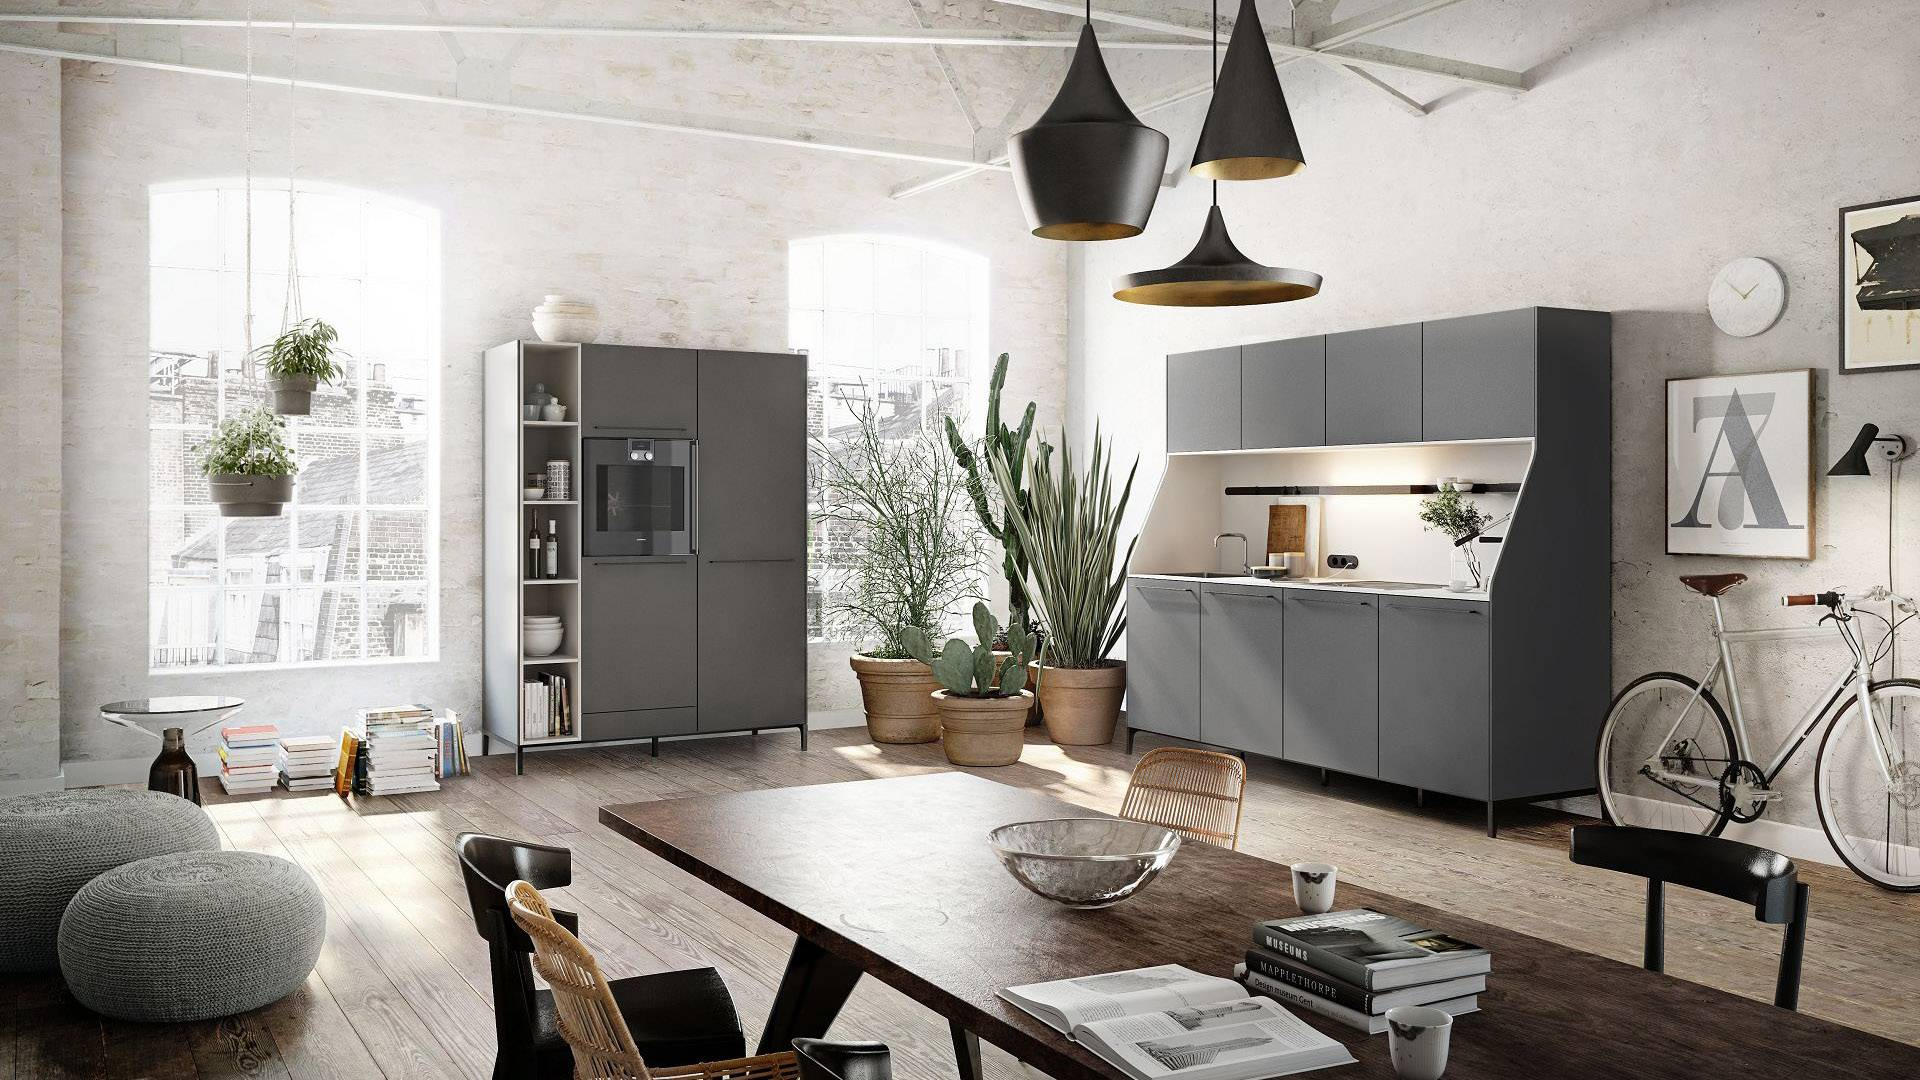 SieMatic 29 Kitchen Sideboard And Freestanding Tall Cabinet In Graphite  Grey From The Urban Style Collection ... Part 79